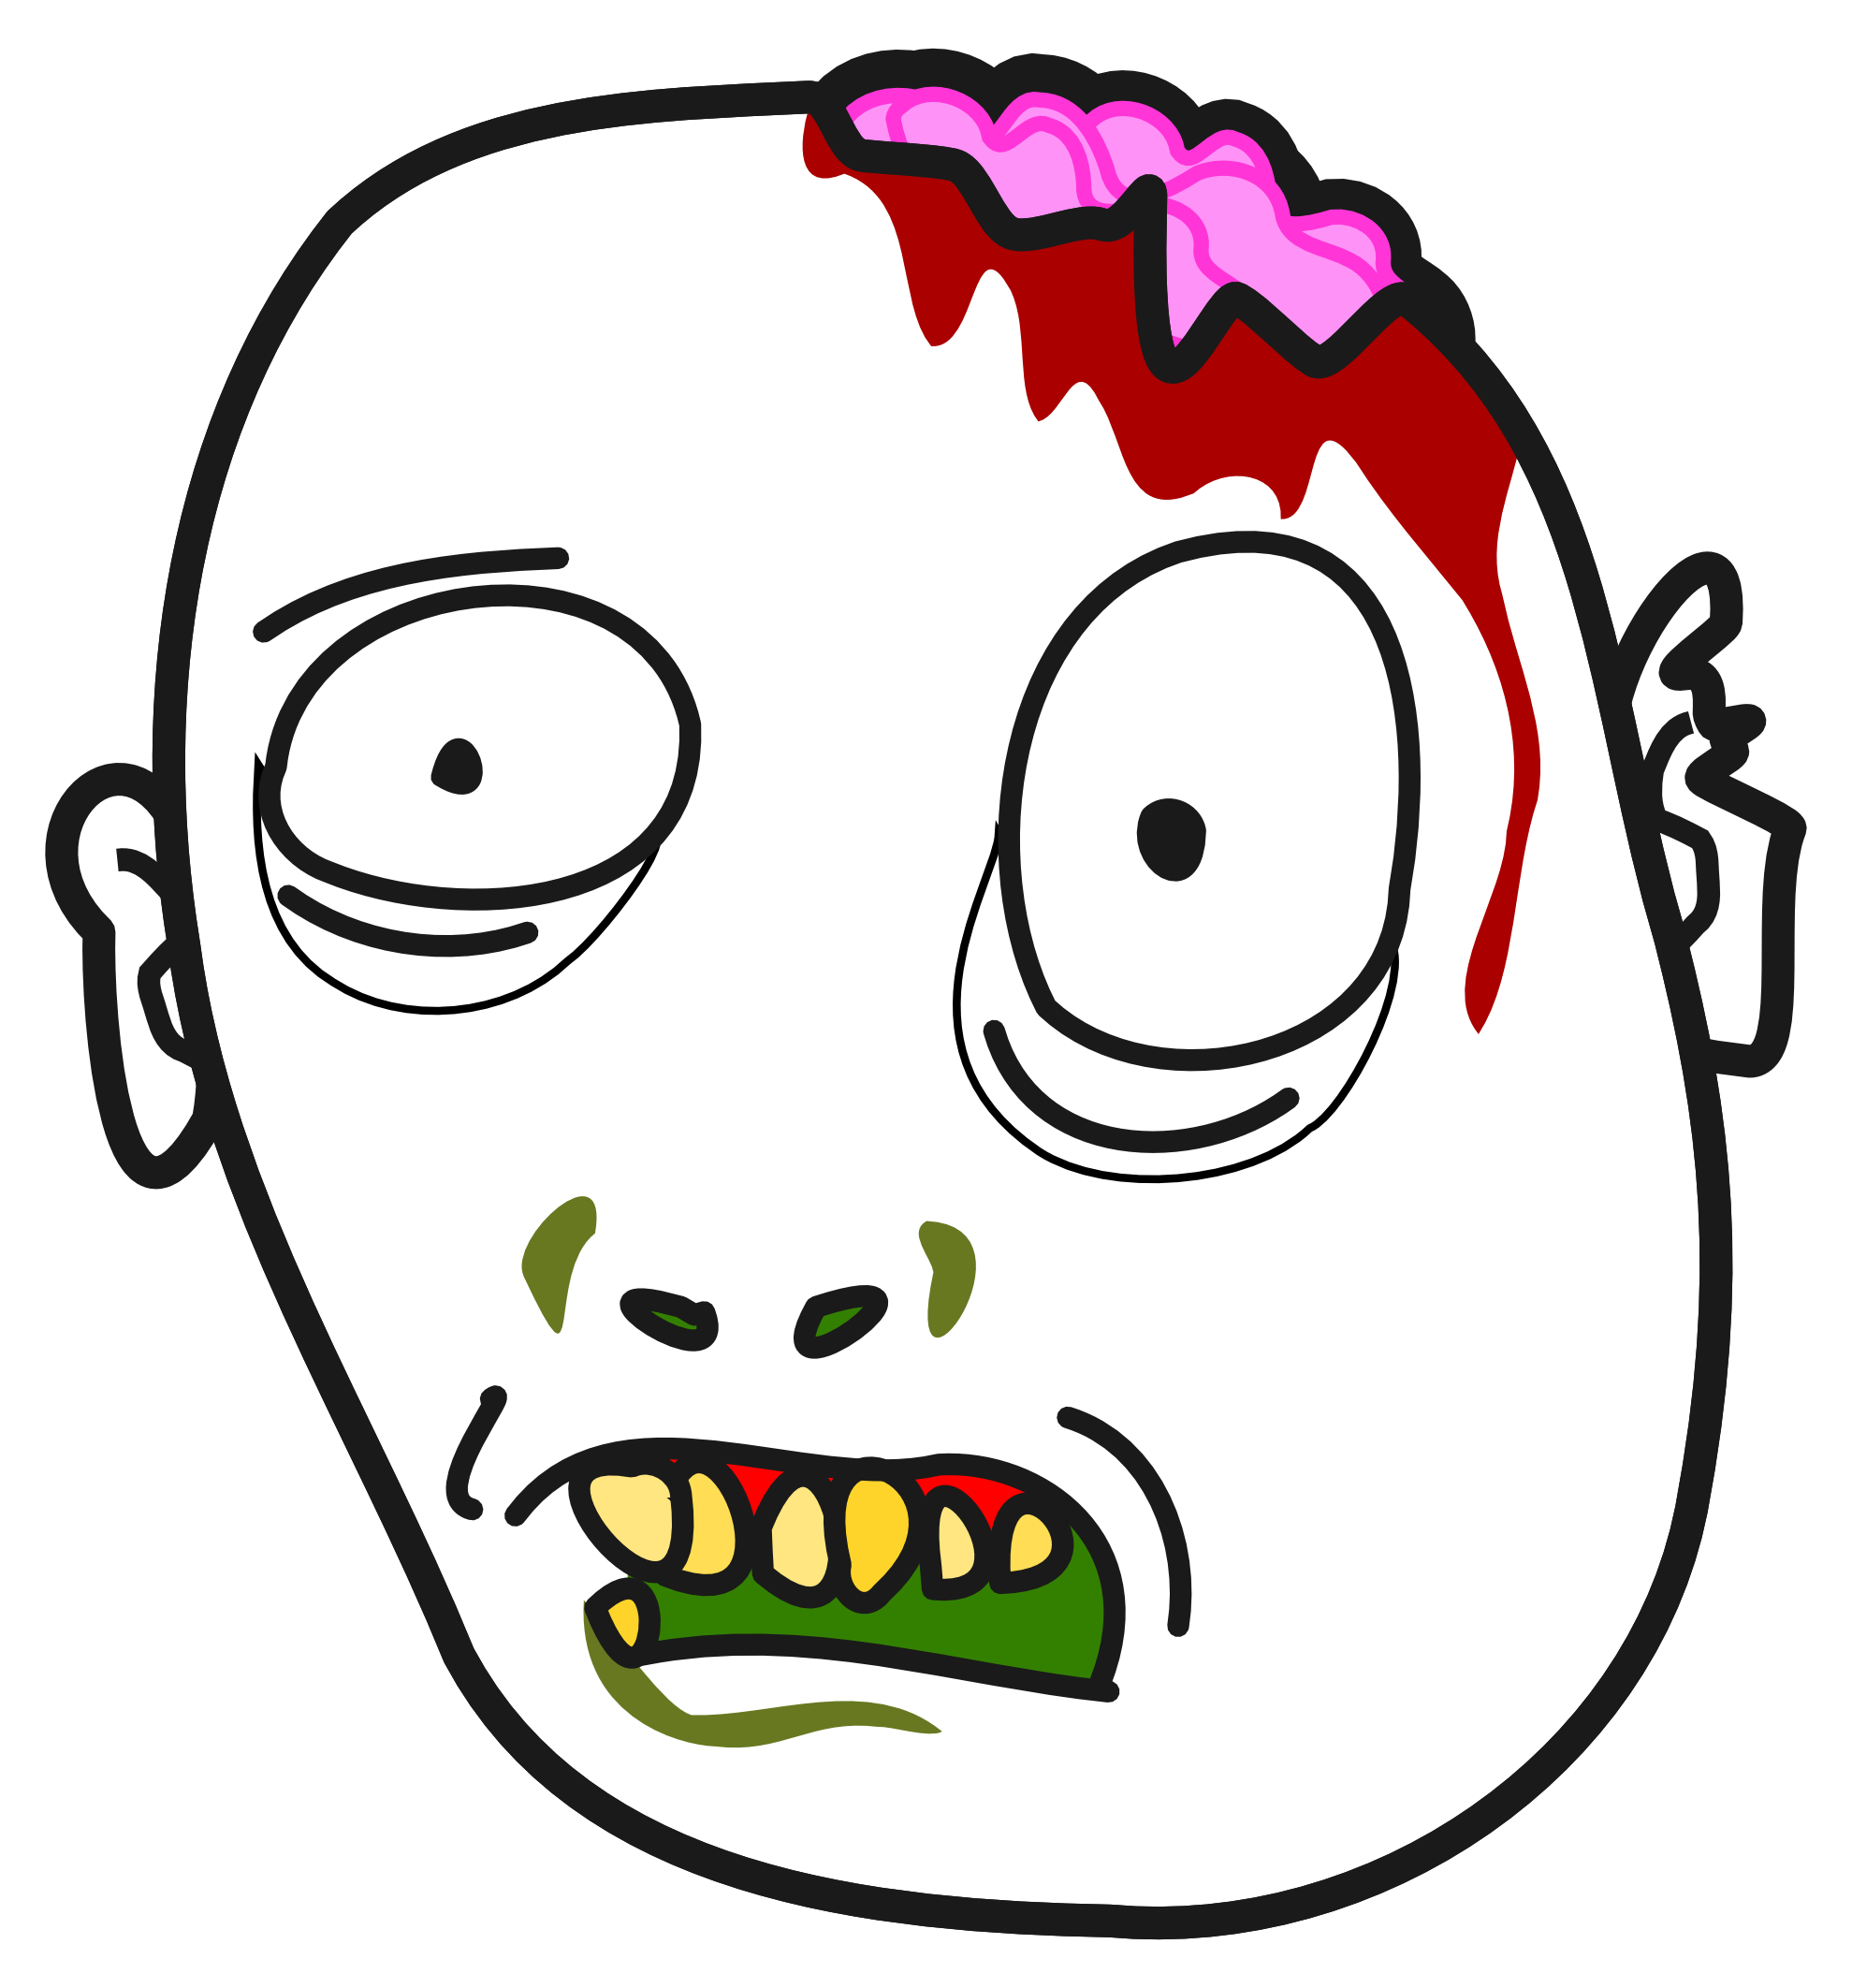 Zombie Face Line Drawing : Zombie clipart panda free images